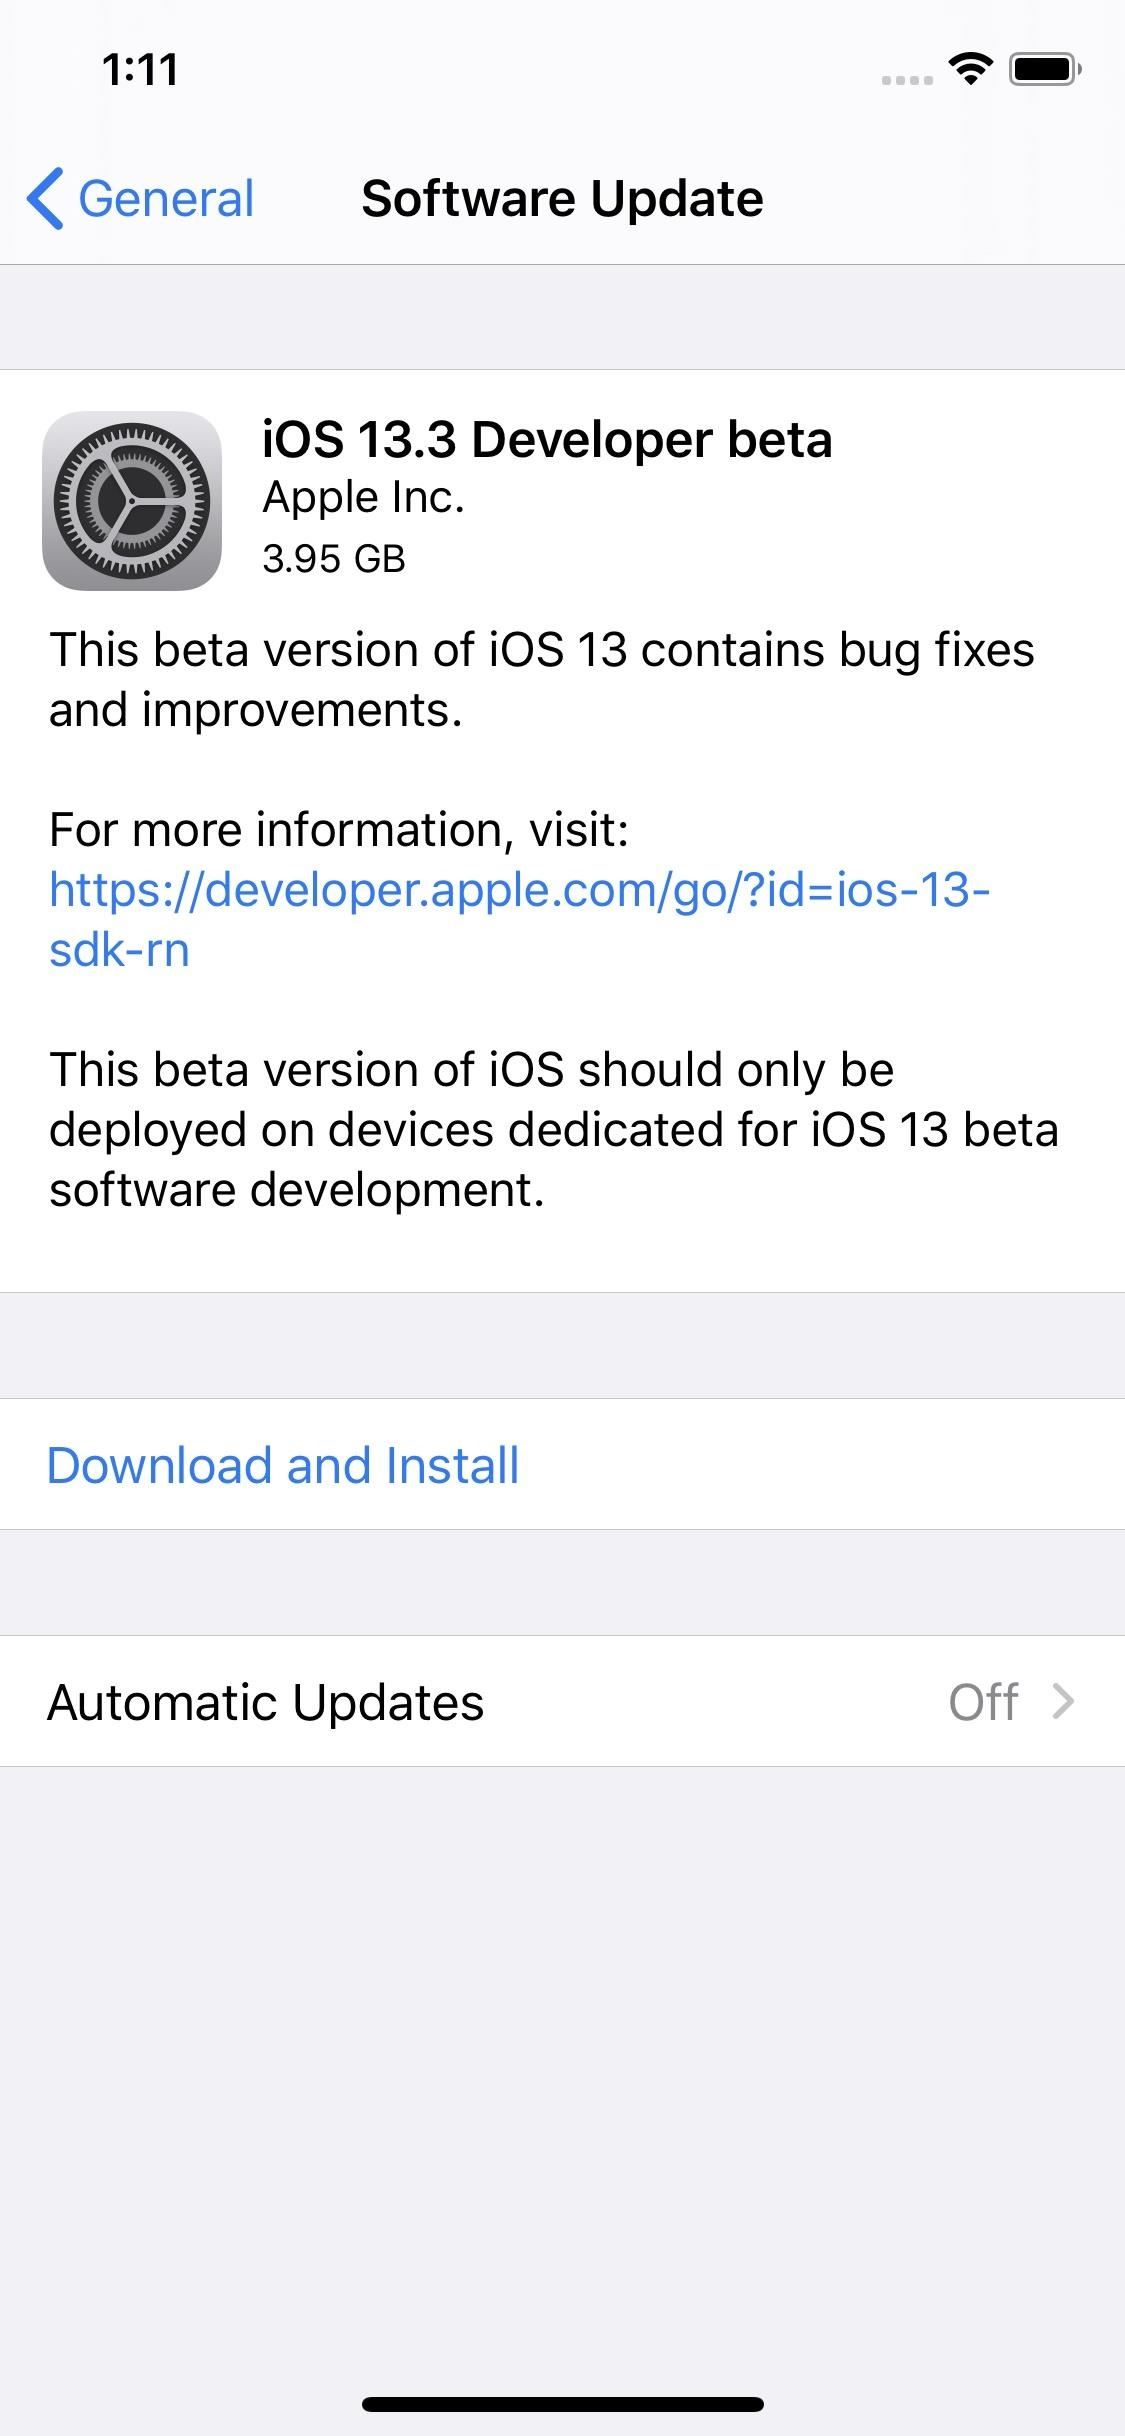 Apple releases iOS 13.3 Beta 1 for iPhone developers